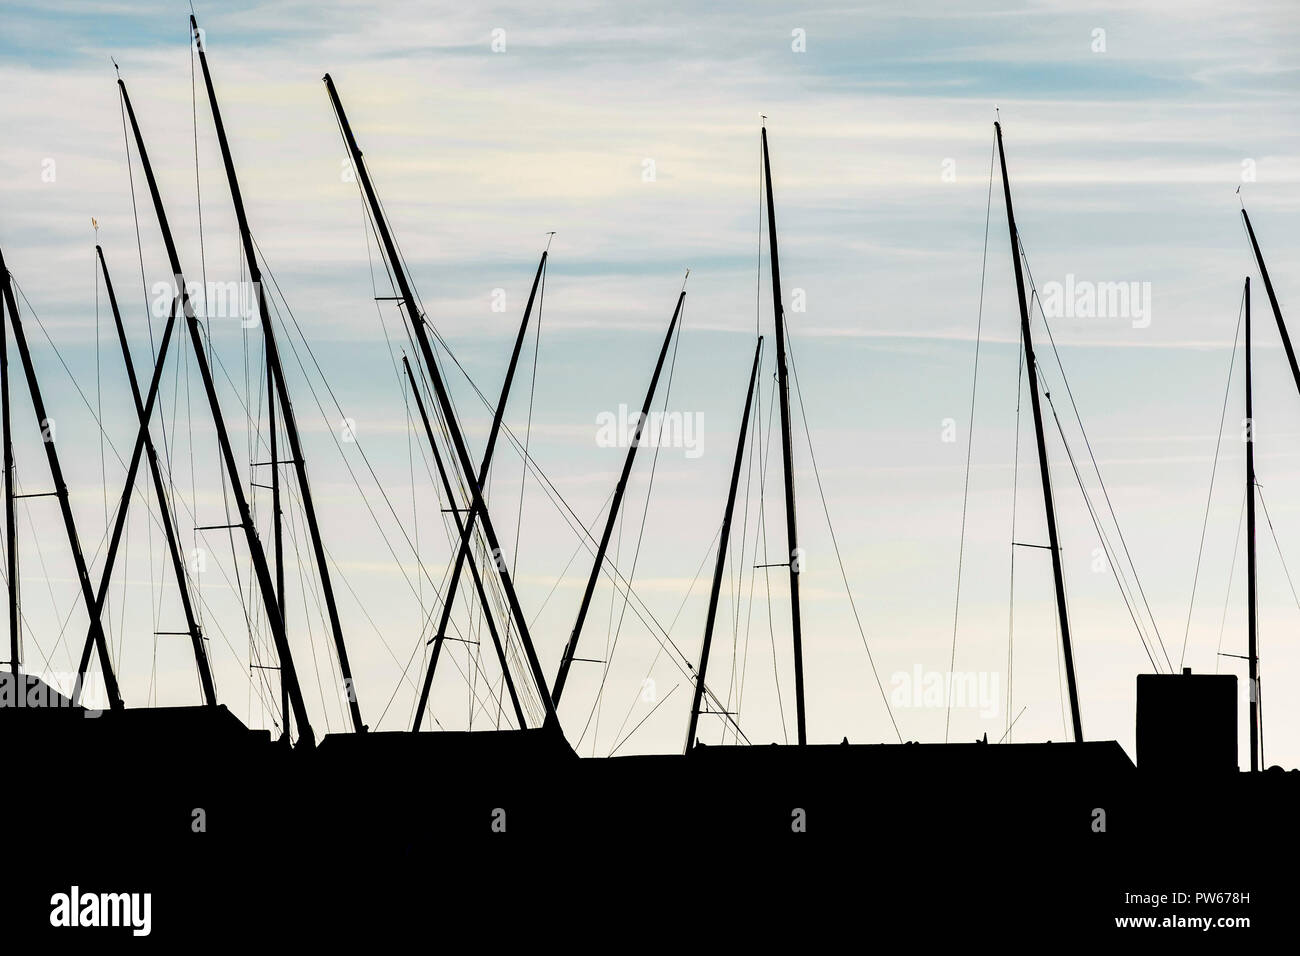 The masts of sail boats seen in silhouette. - Stock Image